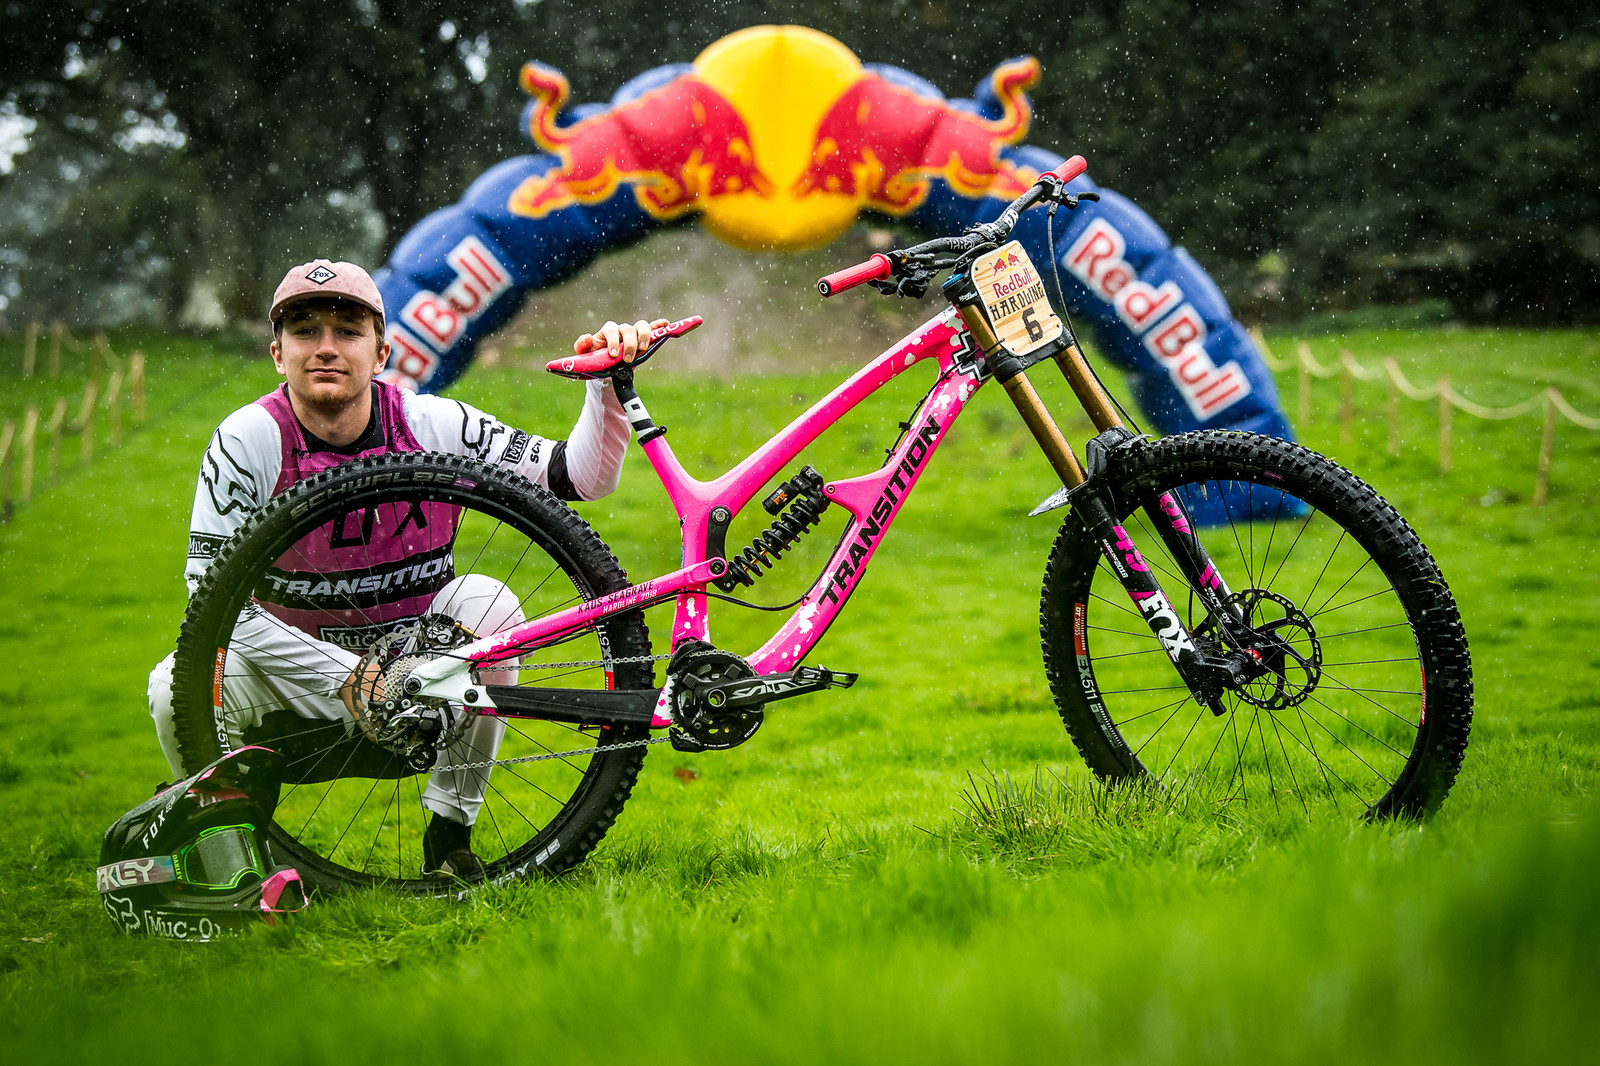 Kaos Seagrave and His Transition TR11 Pretty in PInk - Red Bull Hardline 2018 Riders and Bikes - Mountain Biking Pictures - Vital MTB